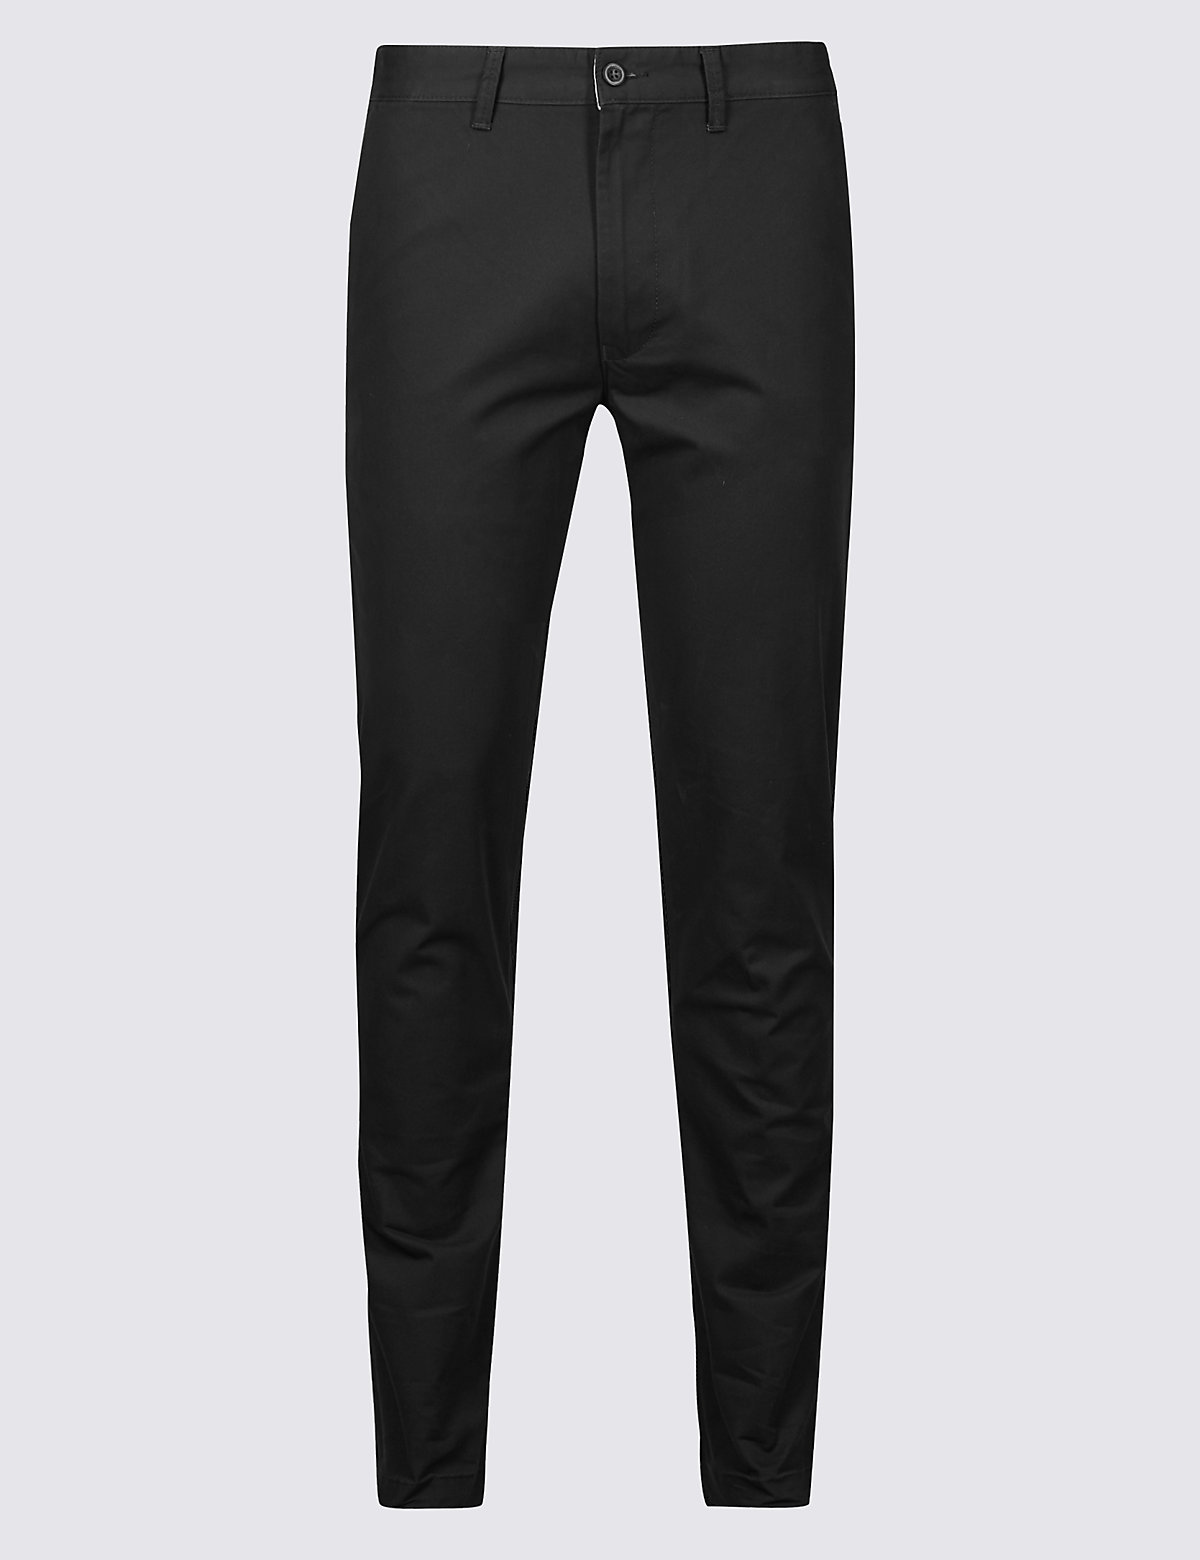 Marks & Spencer Black Skinny Fit Pure Cotton Chinos